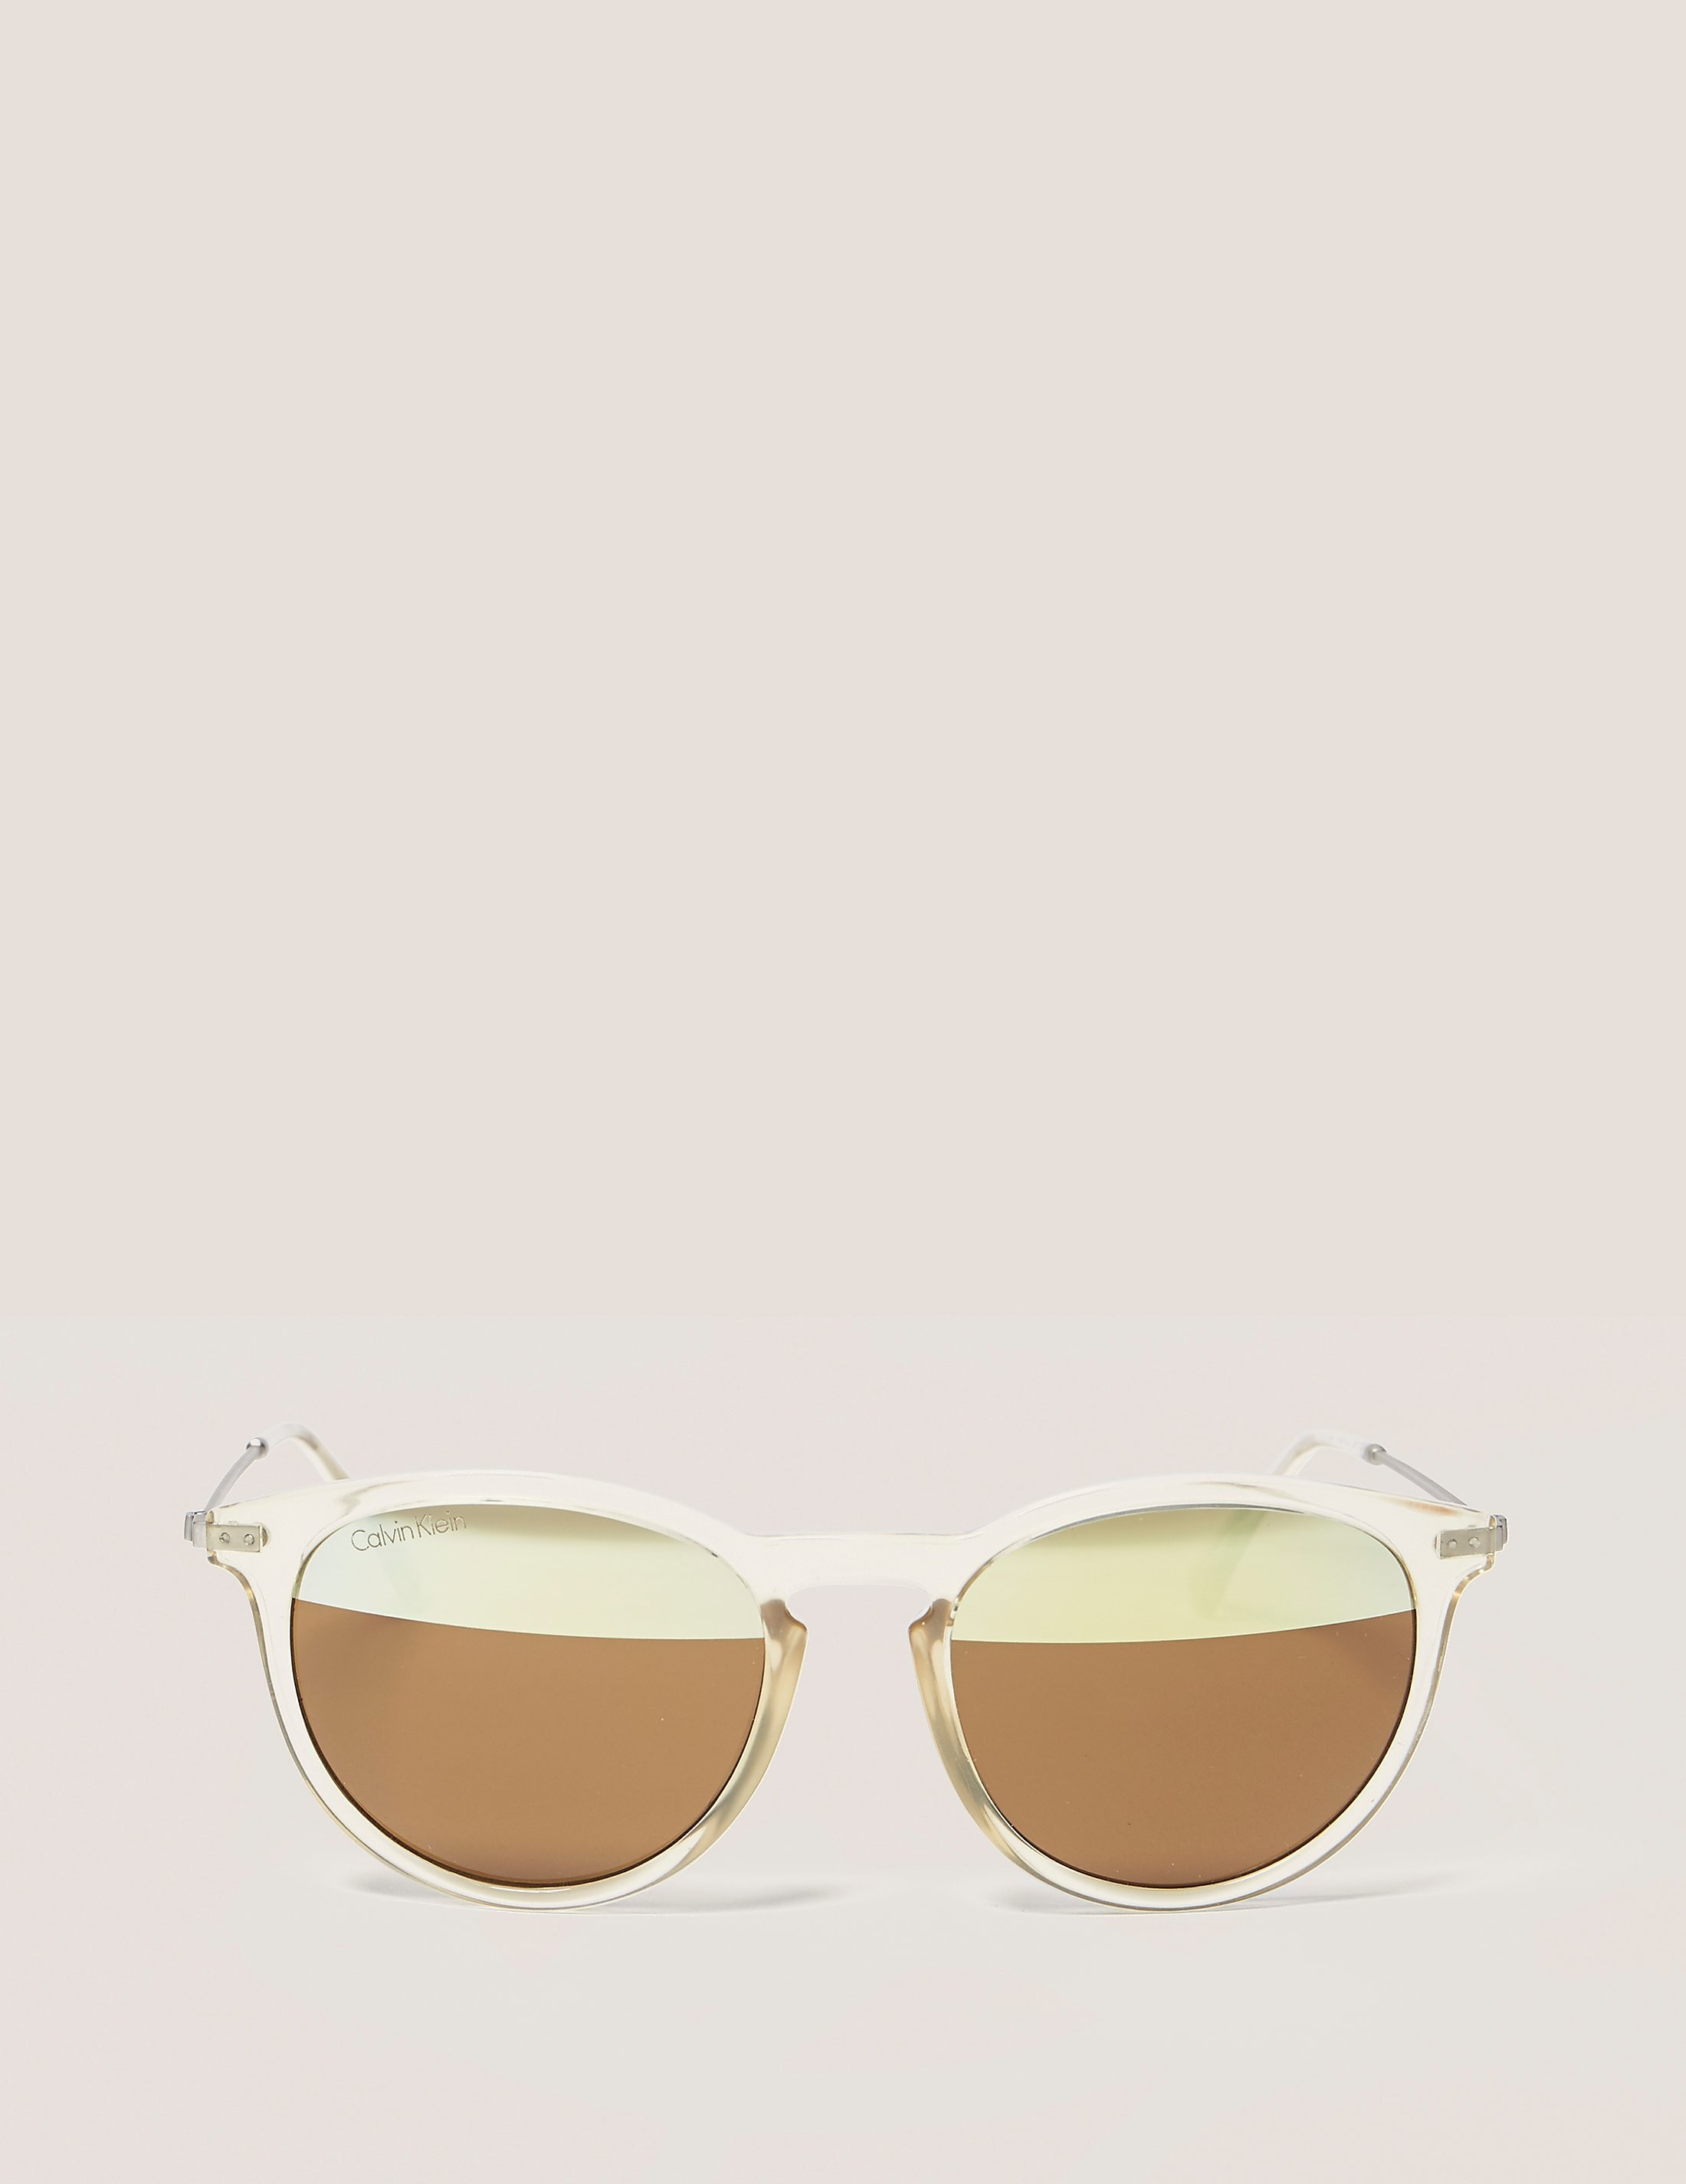 Calvin Klein Mirror Sunglasses